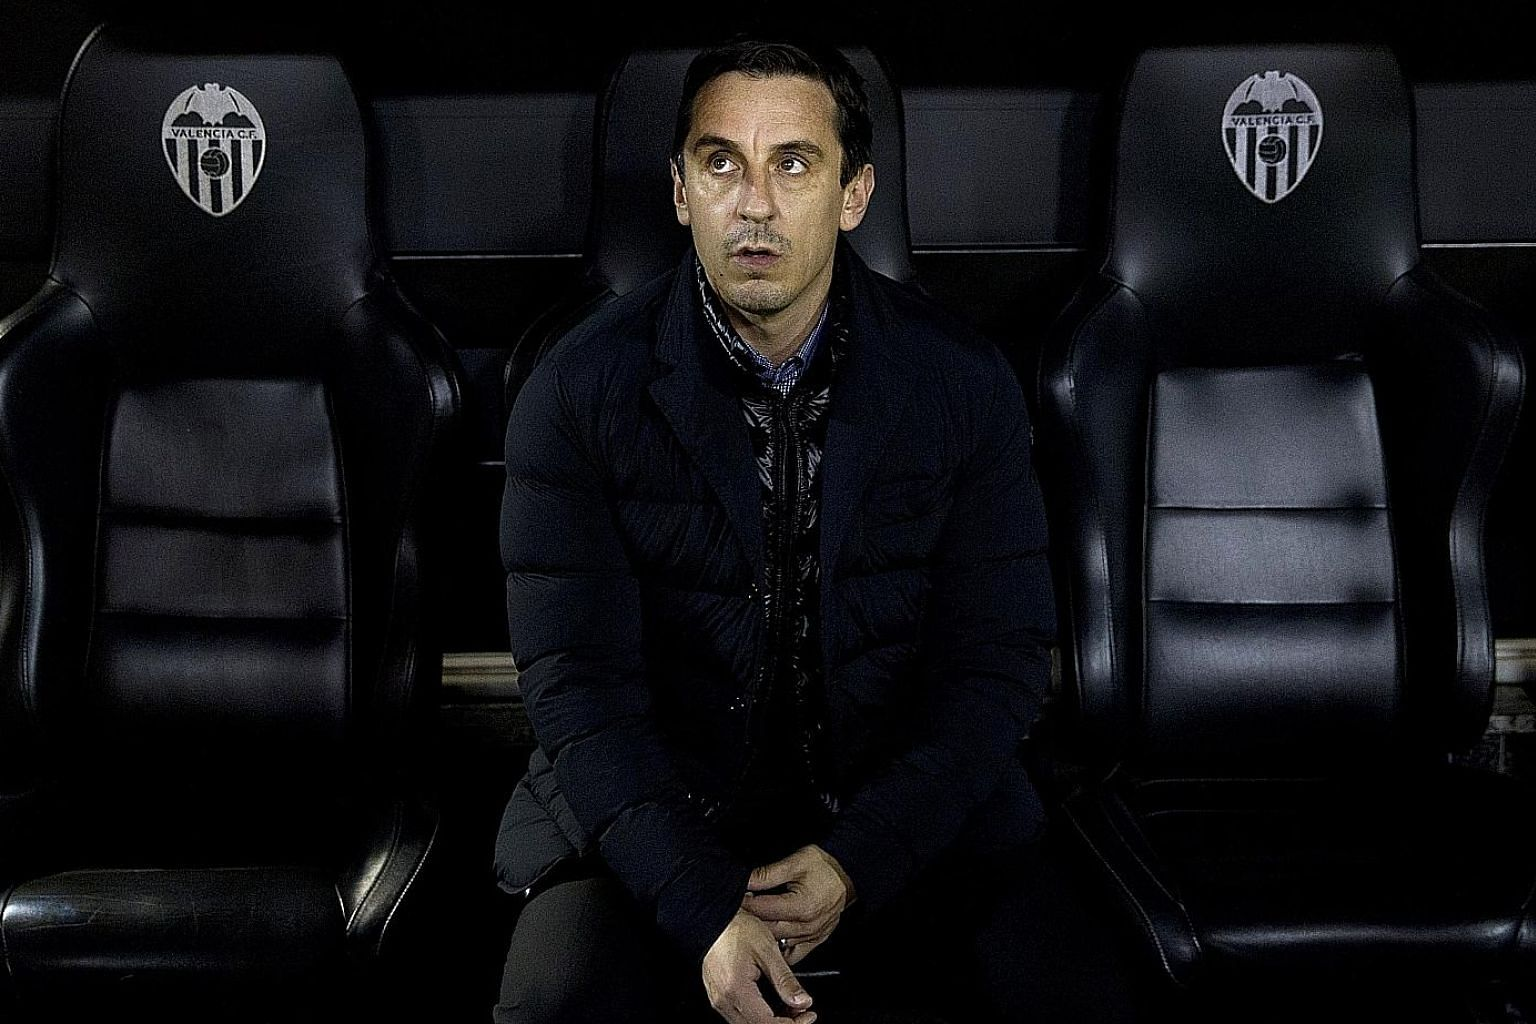 A forlorn-looking Gary Neville in the dug-out during the King's Cup semi-final second leg, where a 1-1 home draw saw Valencia thrashed 8-1 on aggregate by Barcelona.